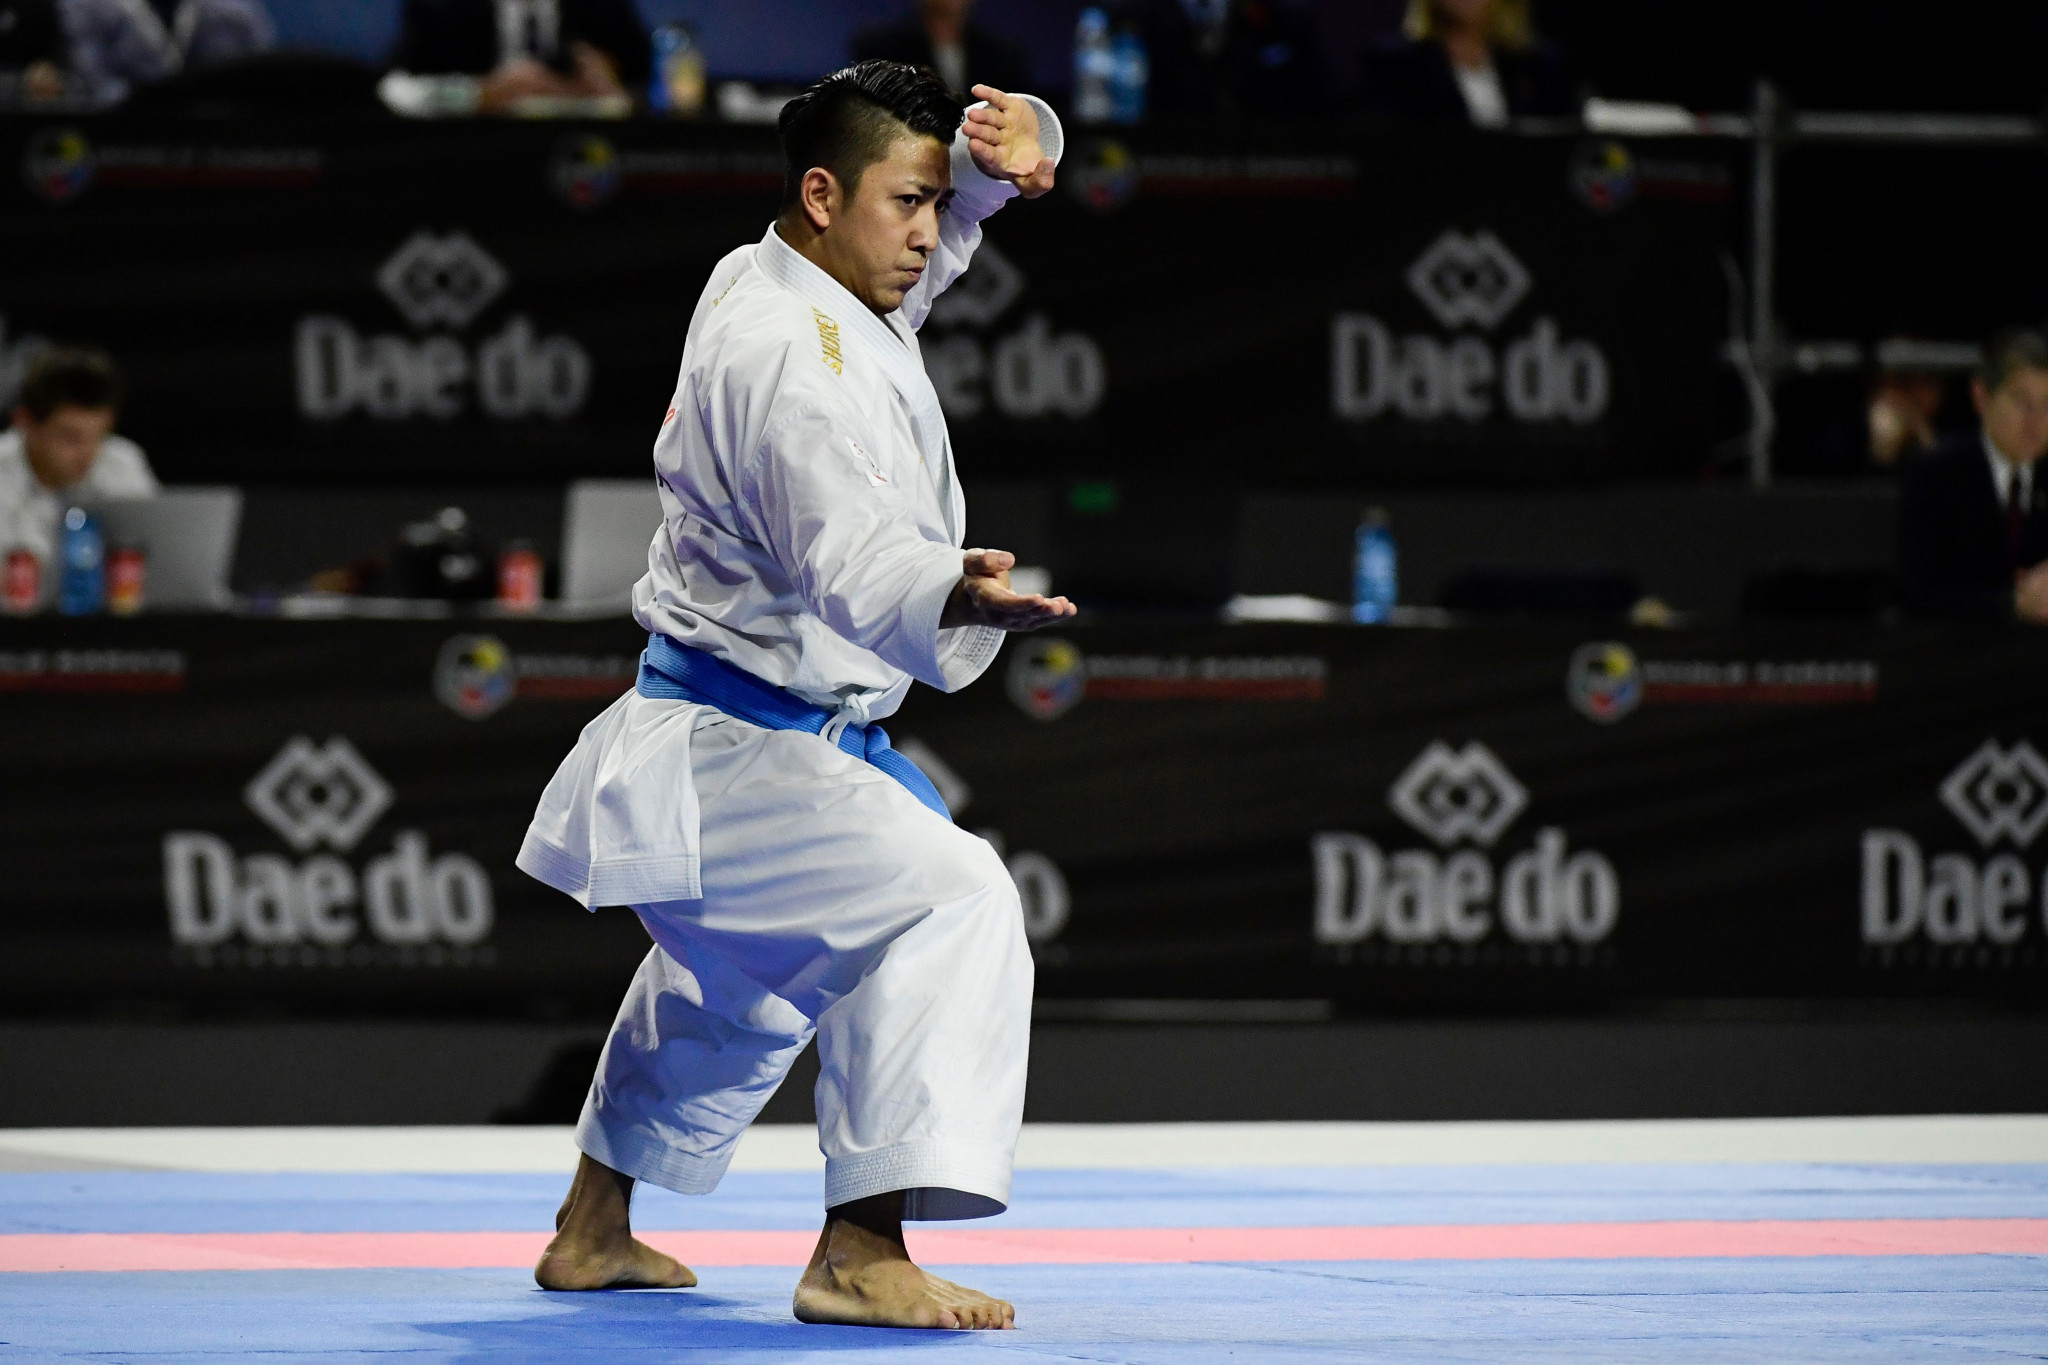 Ryo Kiyuna extended his reign of dominance in the men's kata event ©Getty Images